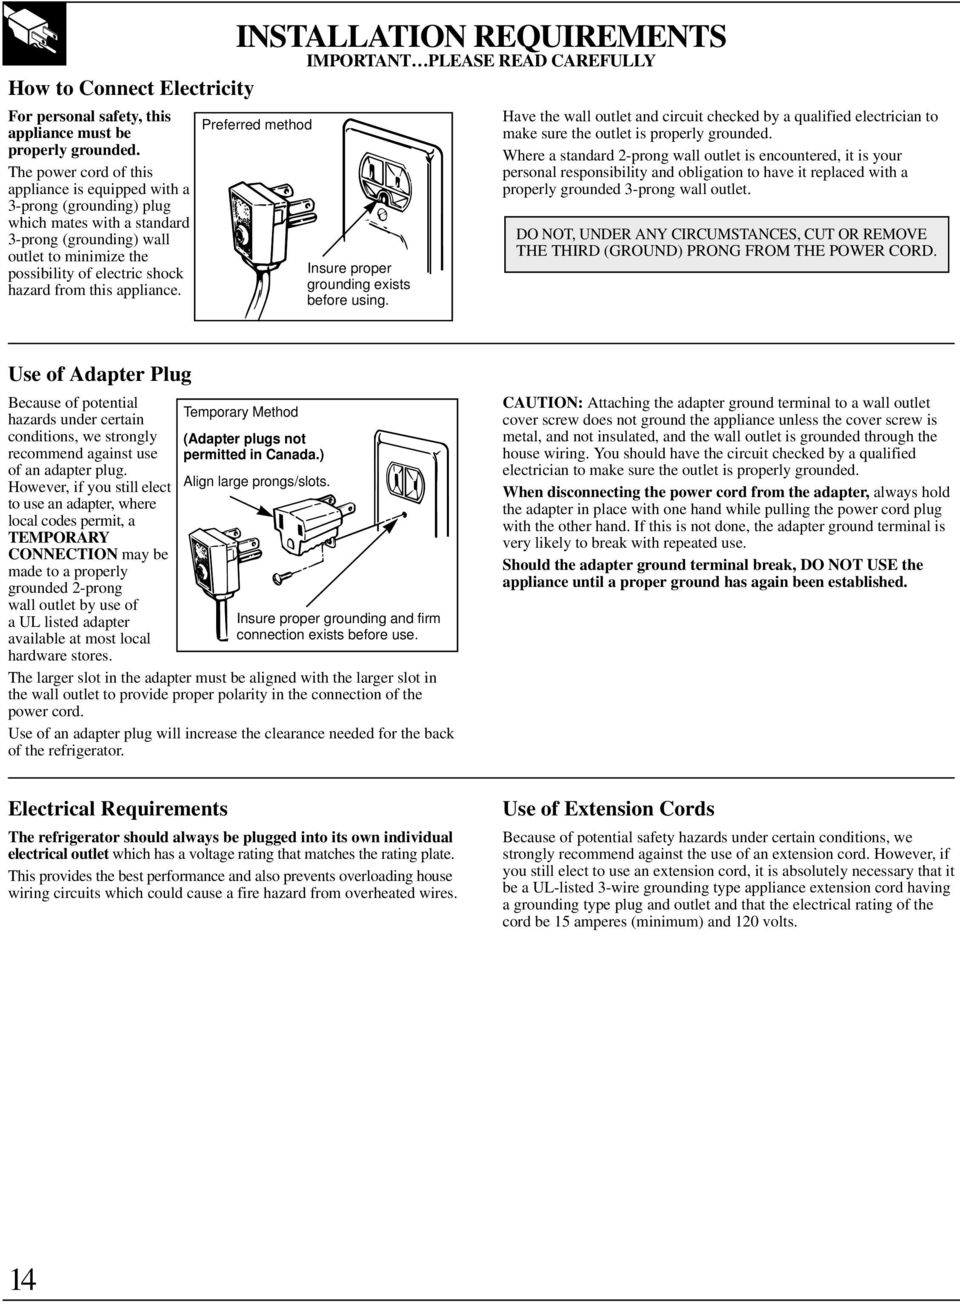 Useandcare Installation Guide Pdf House Wiring Experiment Viva Questions Appliance Preferred Method Insure Proper Grounding Exists Before Using Have The Wall Outlet And